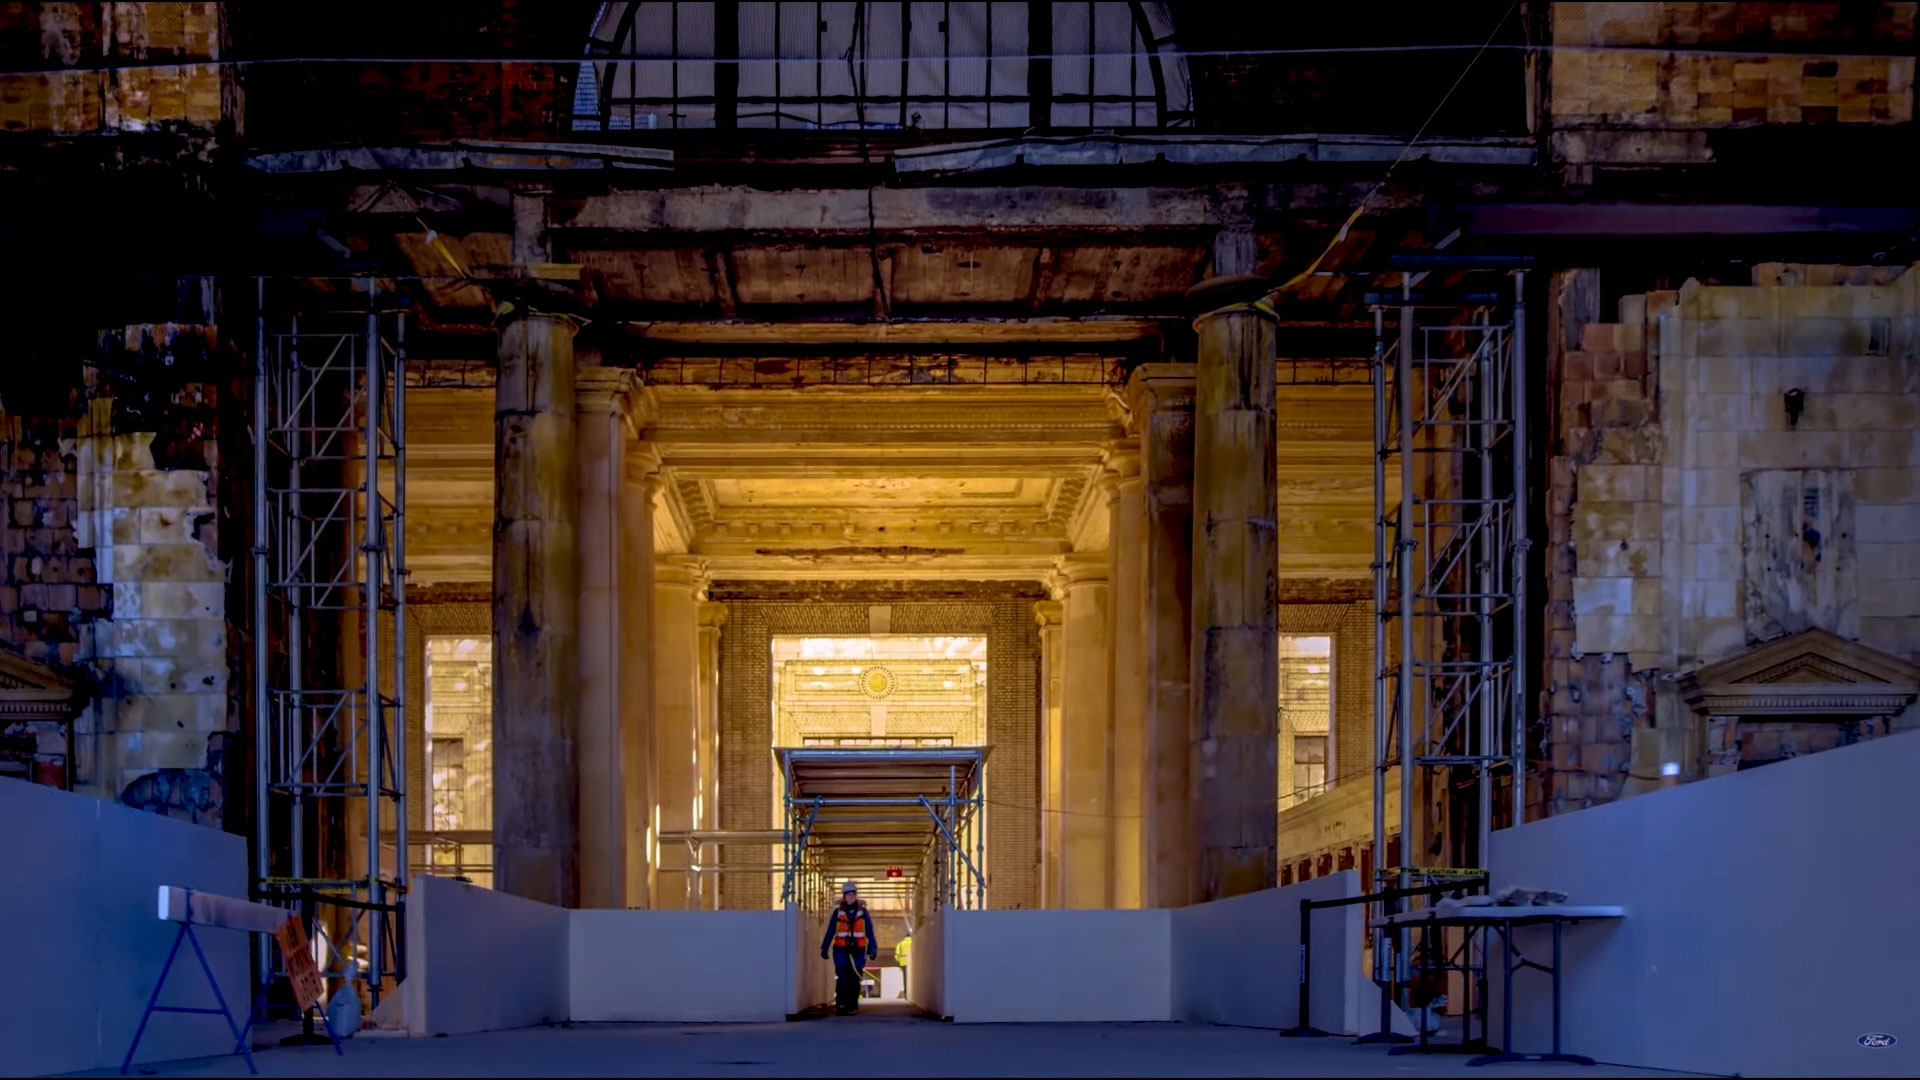 Hear the story of Michigan Central Station